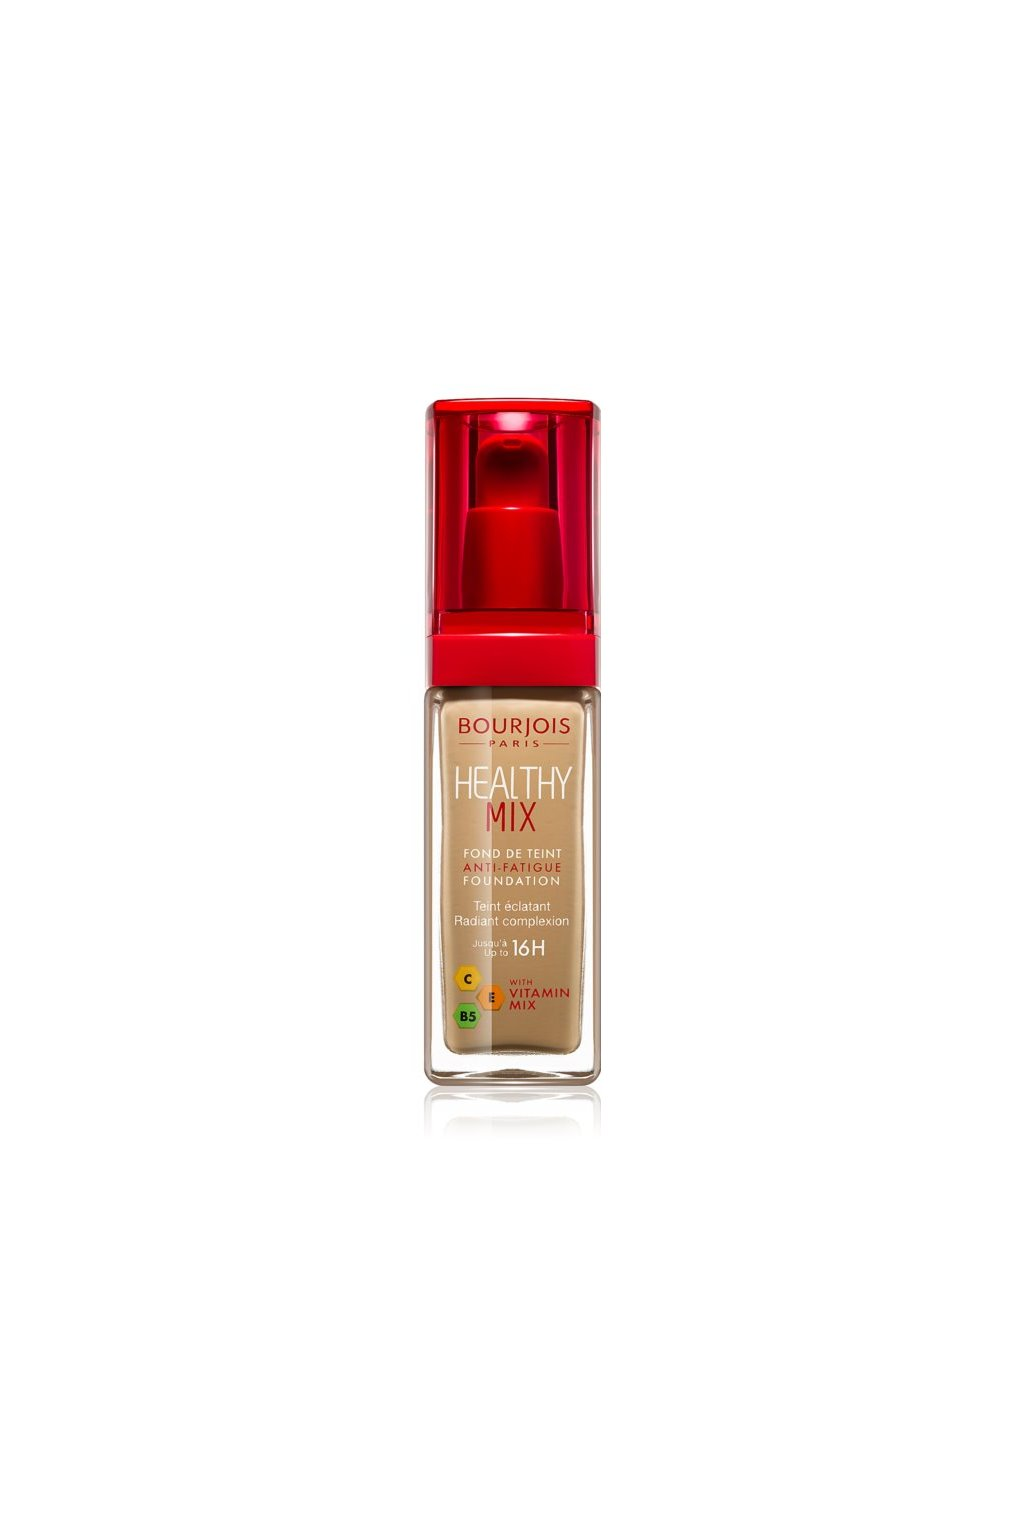 Bourjois Healthy Mix Anti-Fatigue Foundation 30 ml (Odstín 51 Light Vanilla)